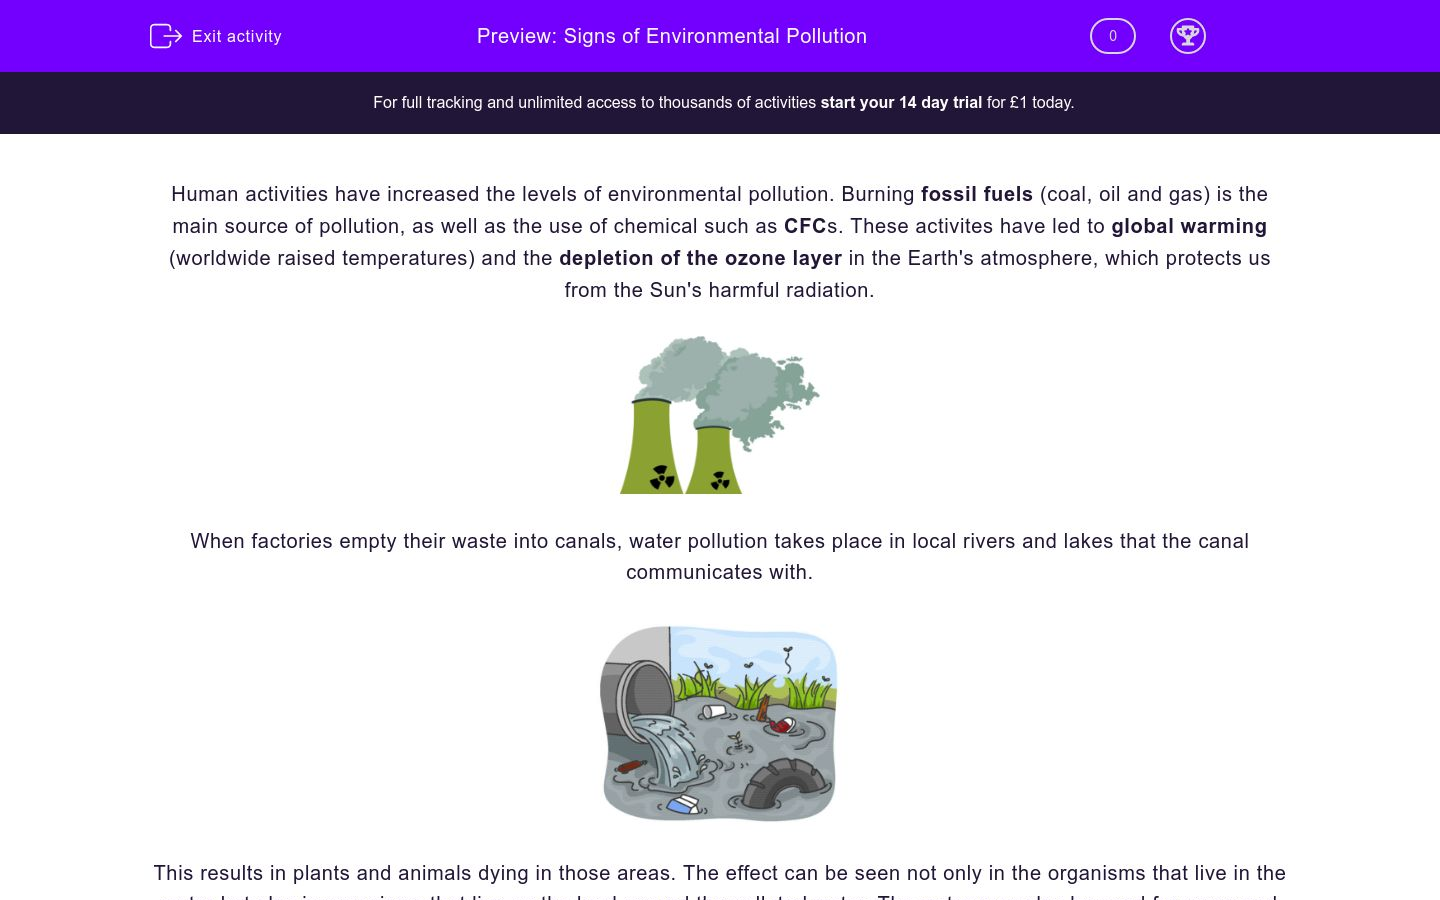 'Understand the Signs of Environmental Pollution' worksheet